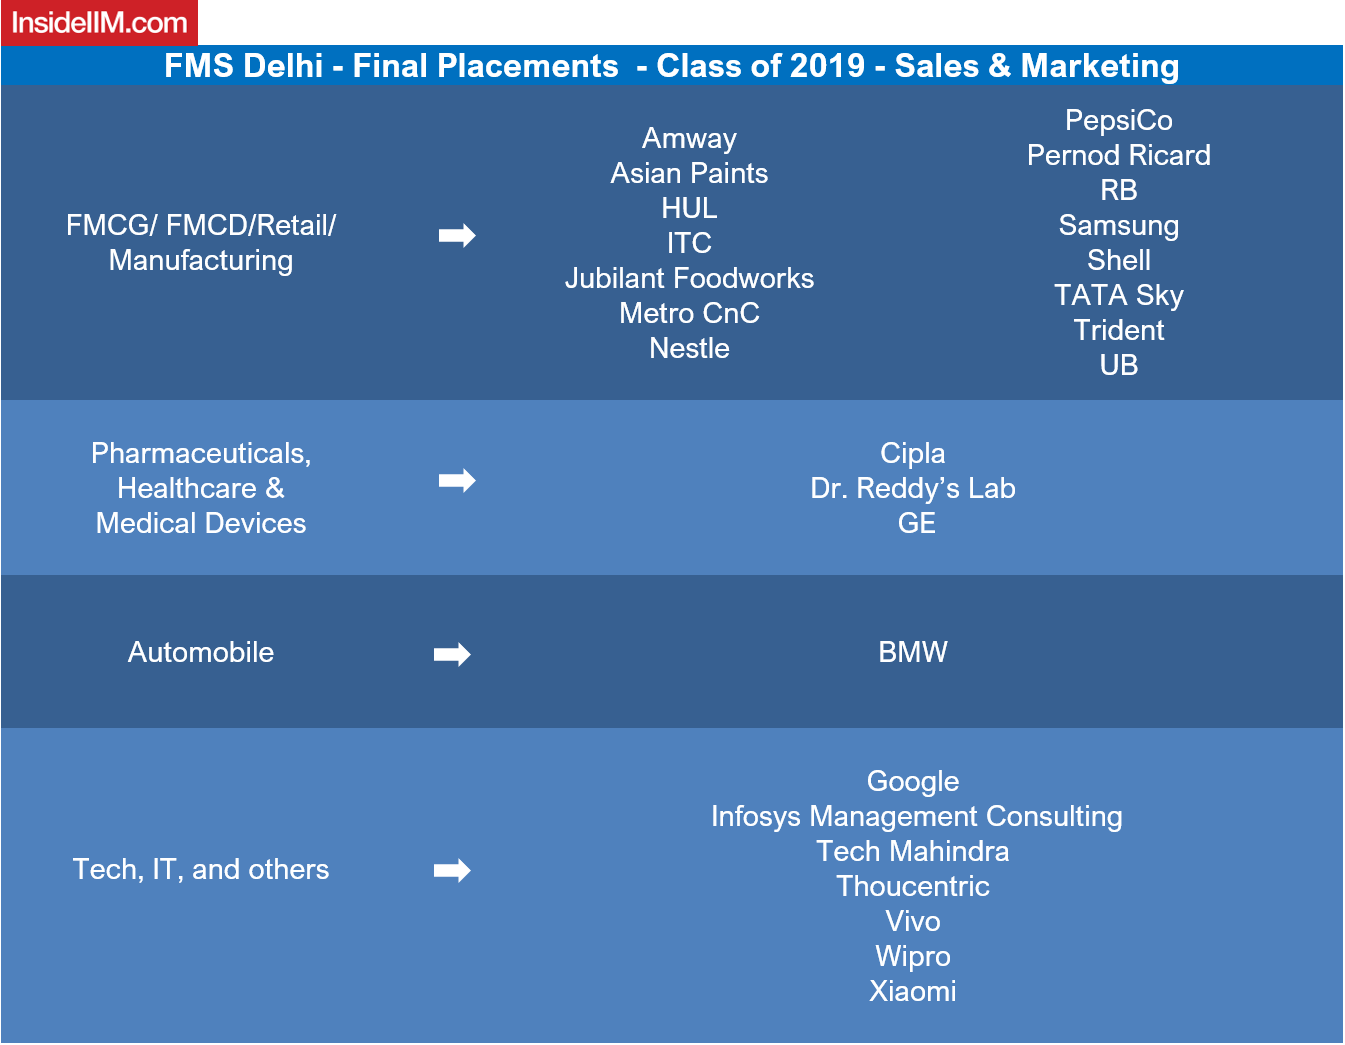 FMS Delhi Placements Report 2019 - Companies: Sales & Marketing